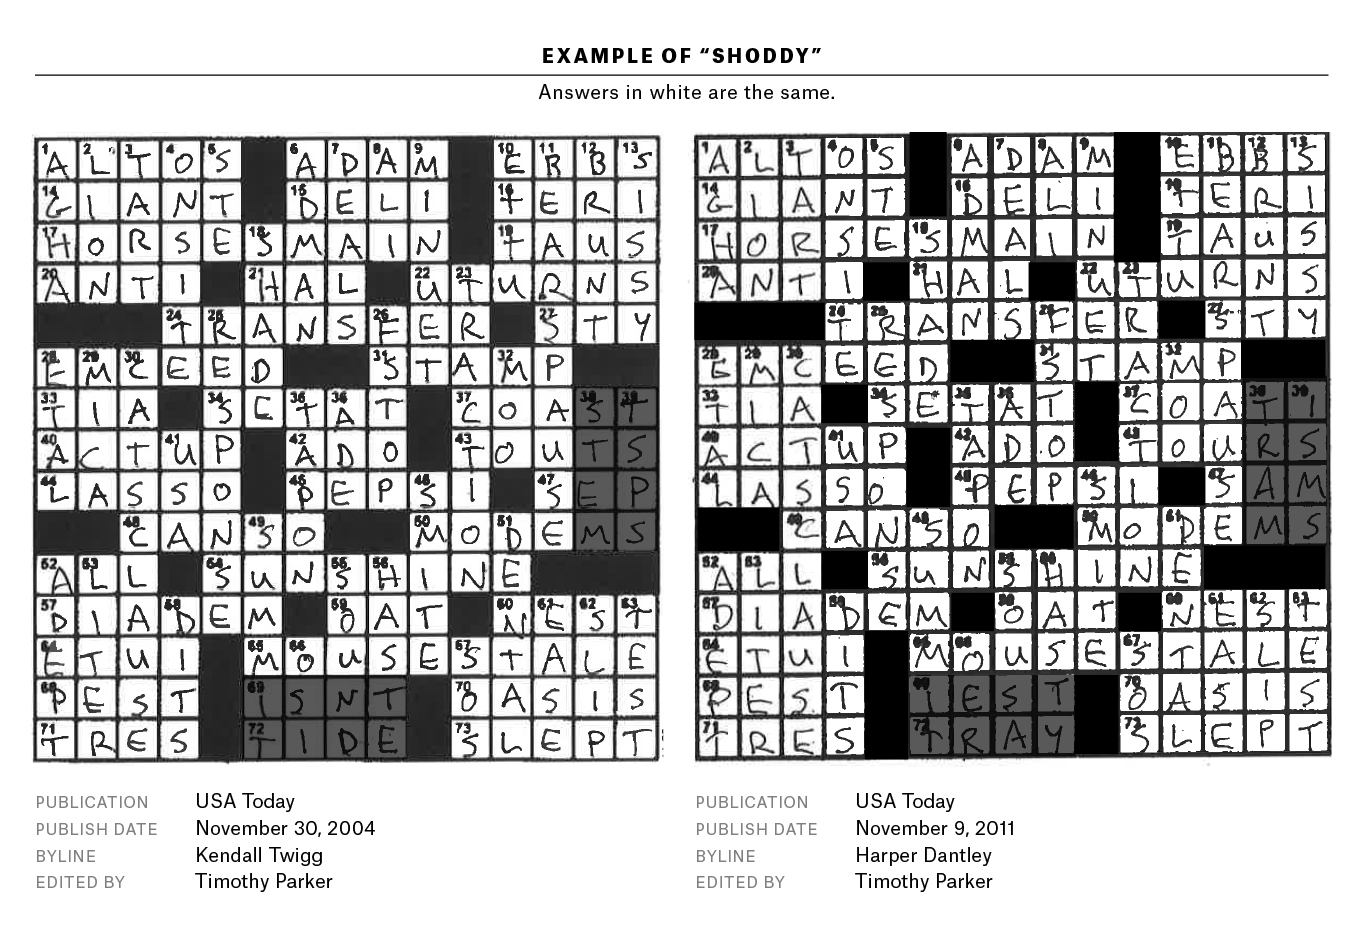 A Plagiarism Scandal Is Unfolding In The Crossword World - Printable Wall Street Journal Crossword Puzzle